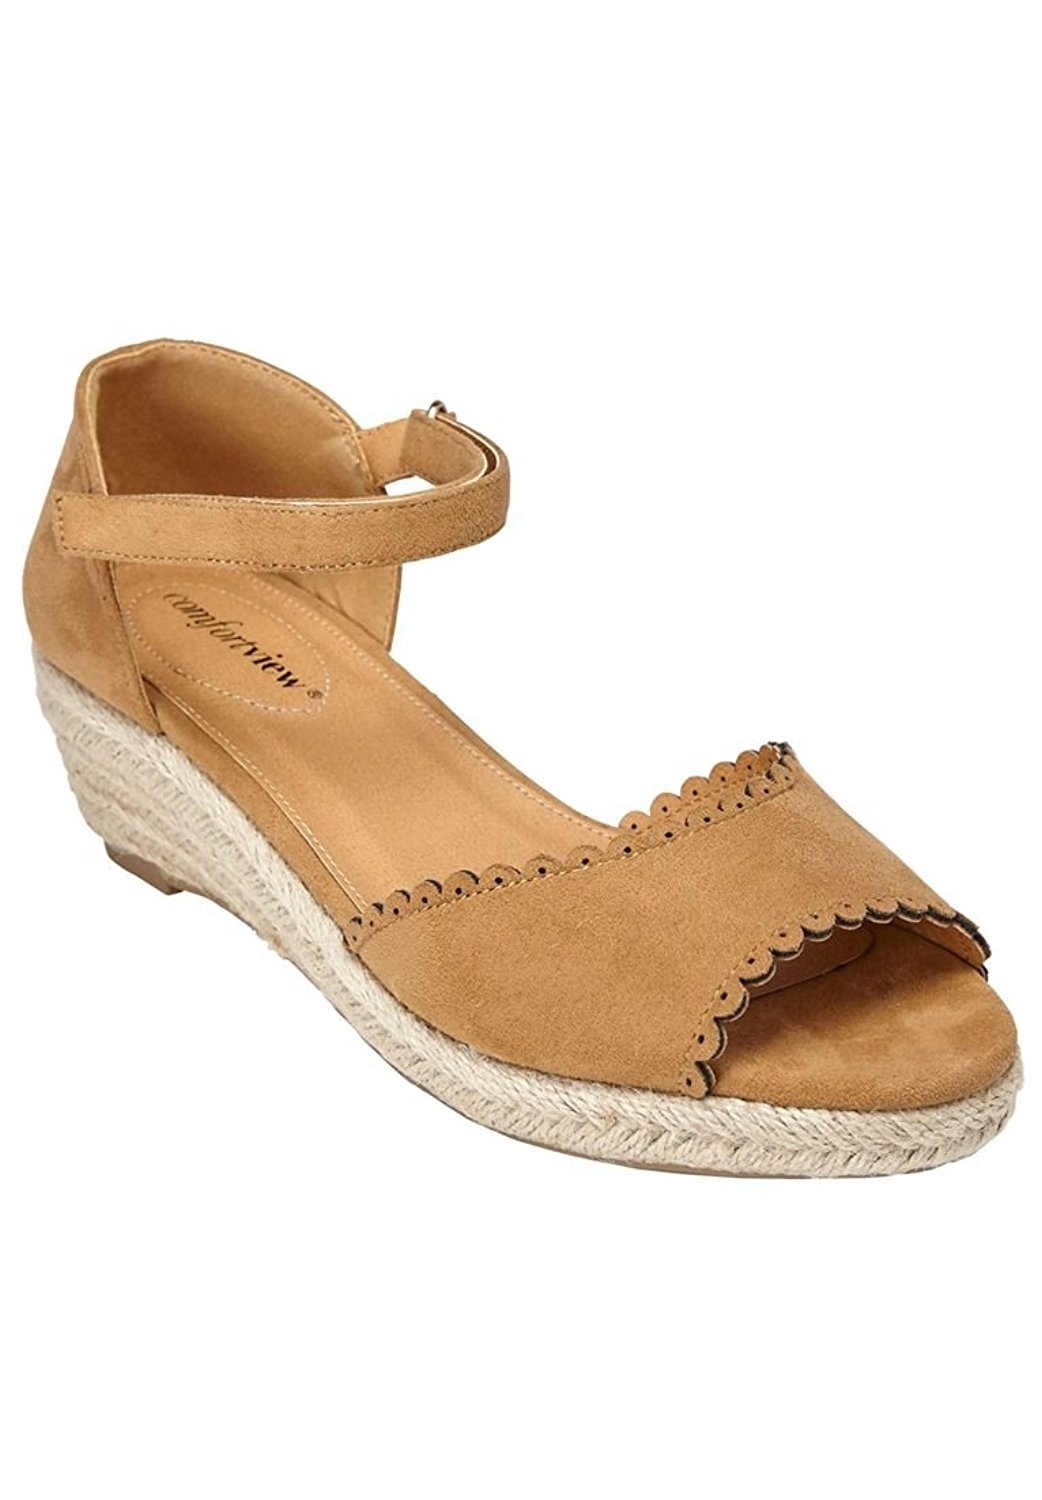 484ab2fdcb9b Get Quotations · Comfortview Women s Wide Charlie Espadrilles